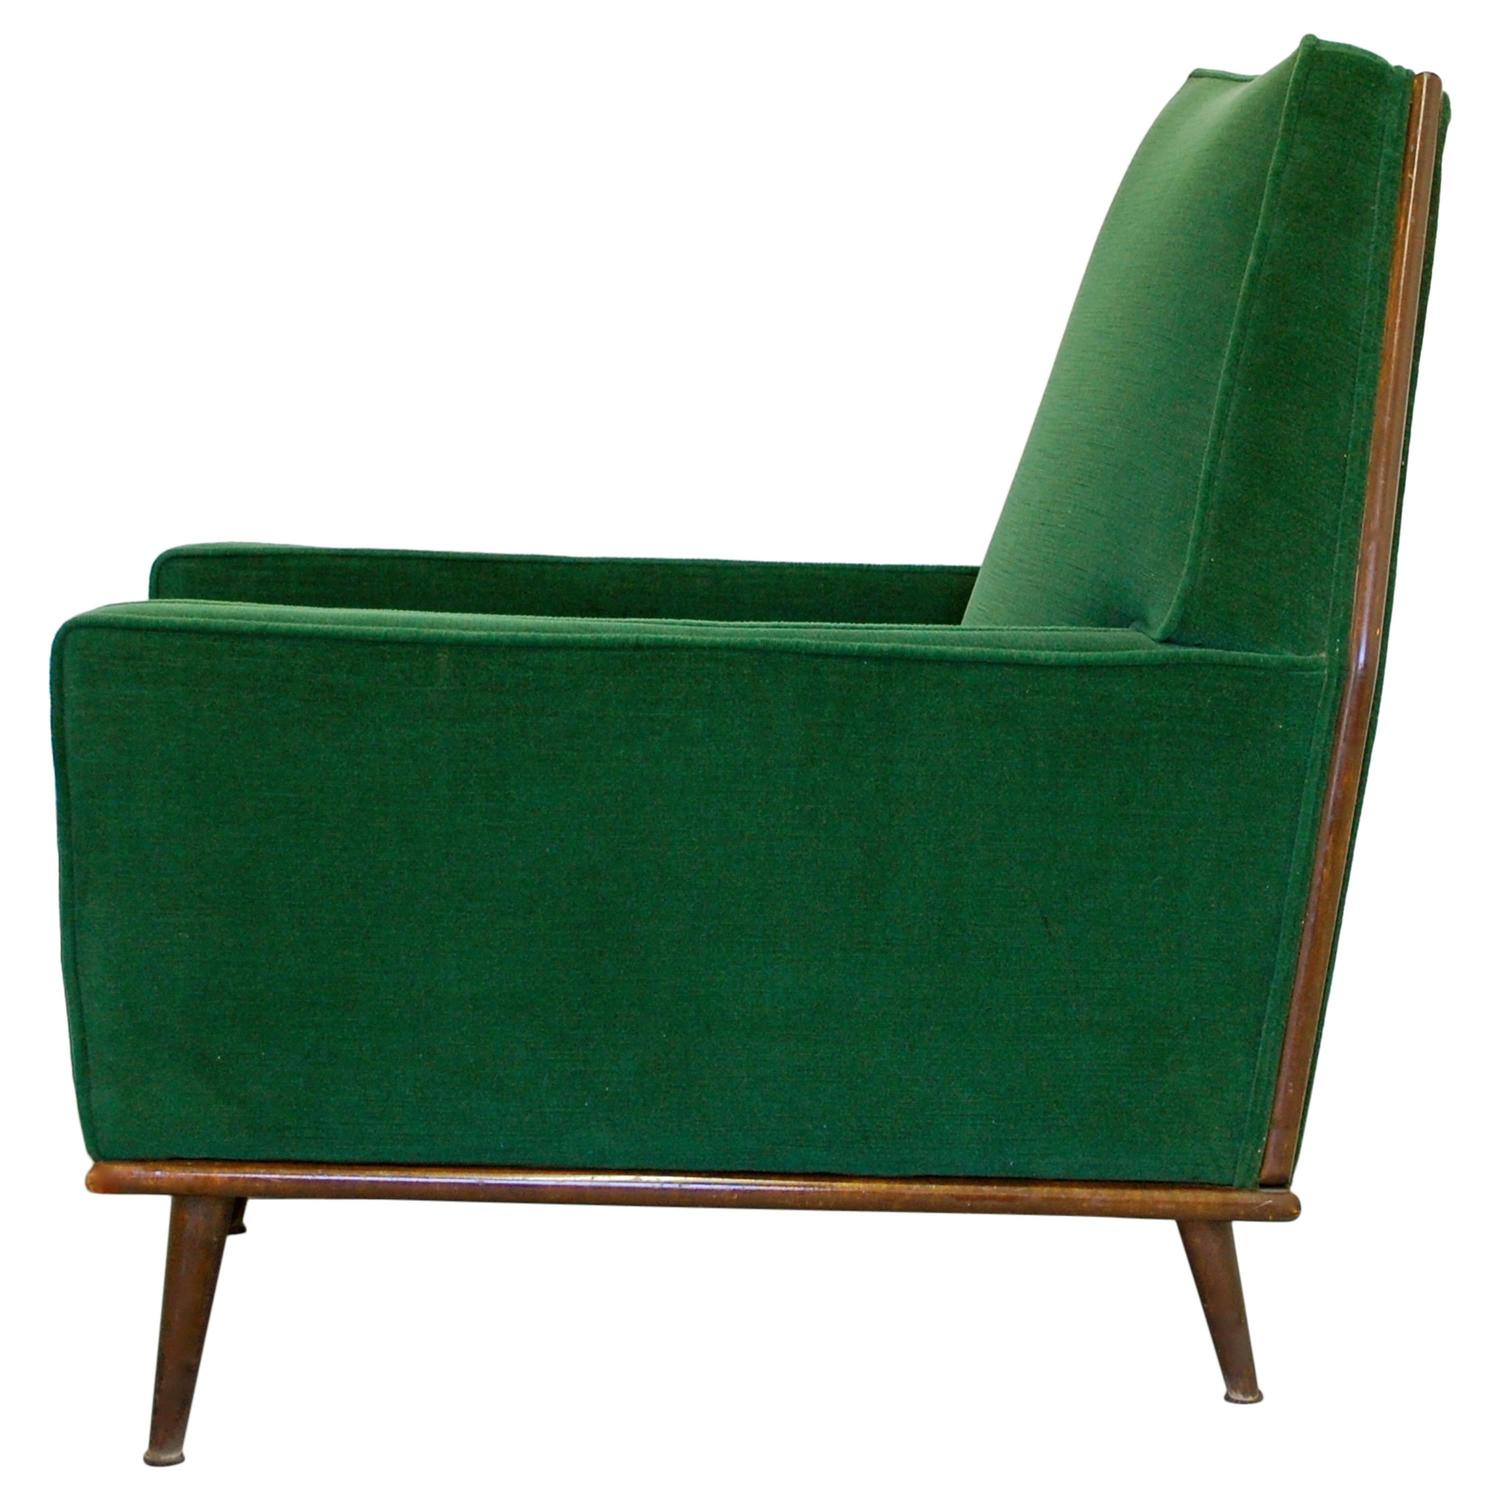 Attractive Incredible Lounge Chair In Emerald Green Mohair, 1950s At 1stdibs